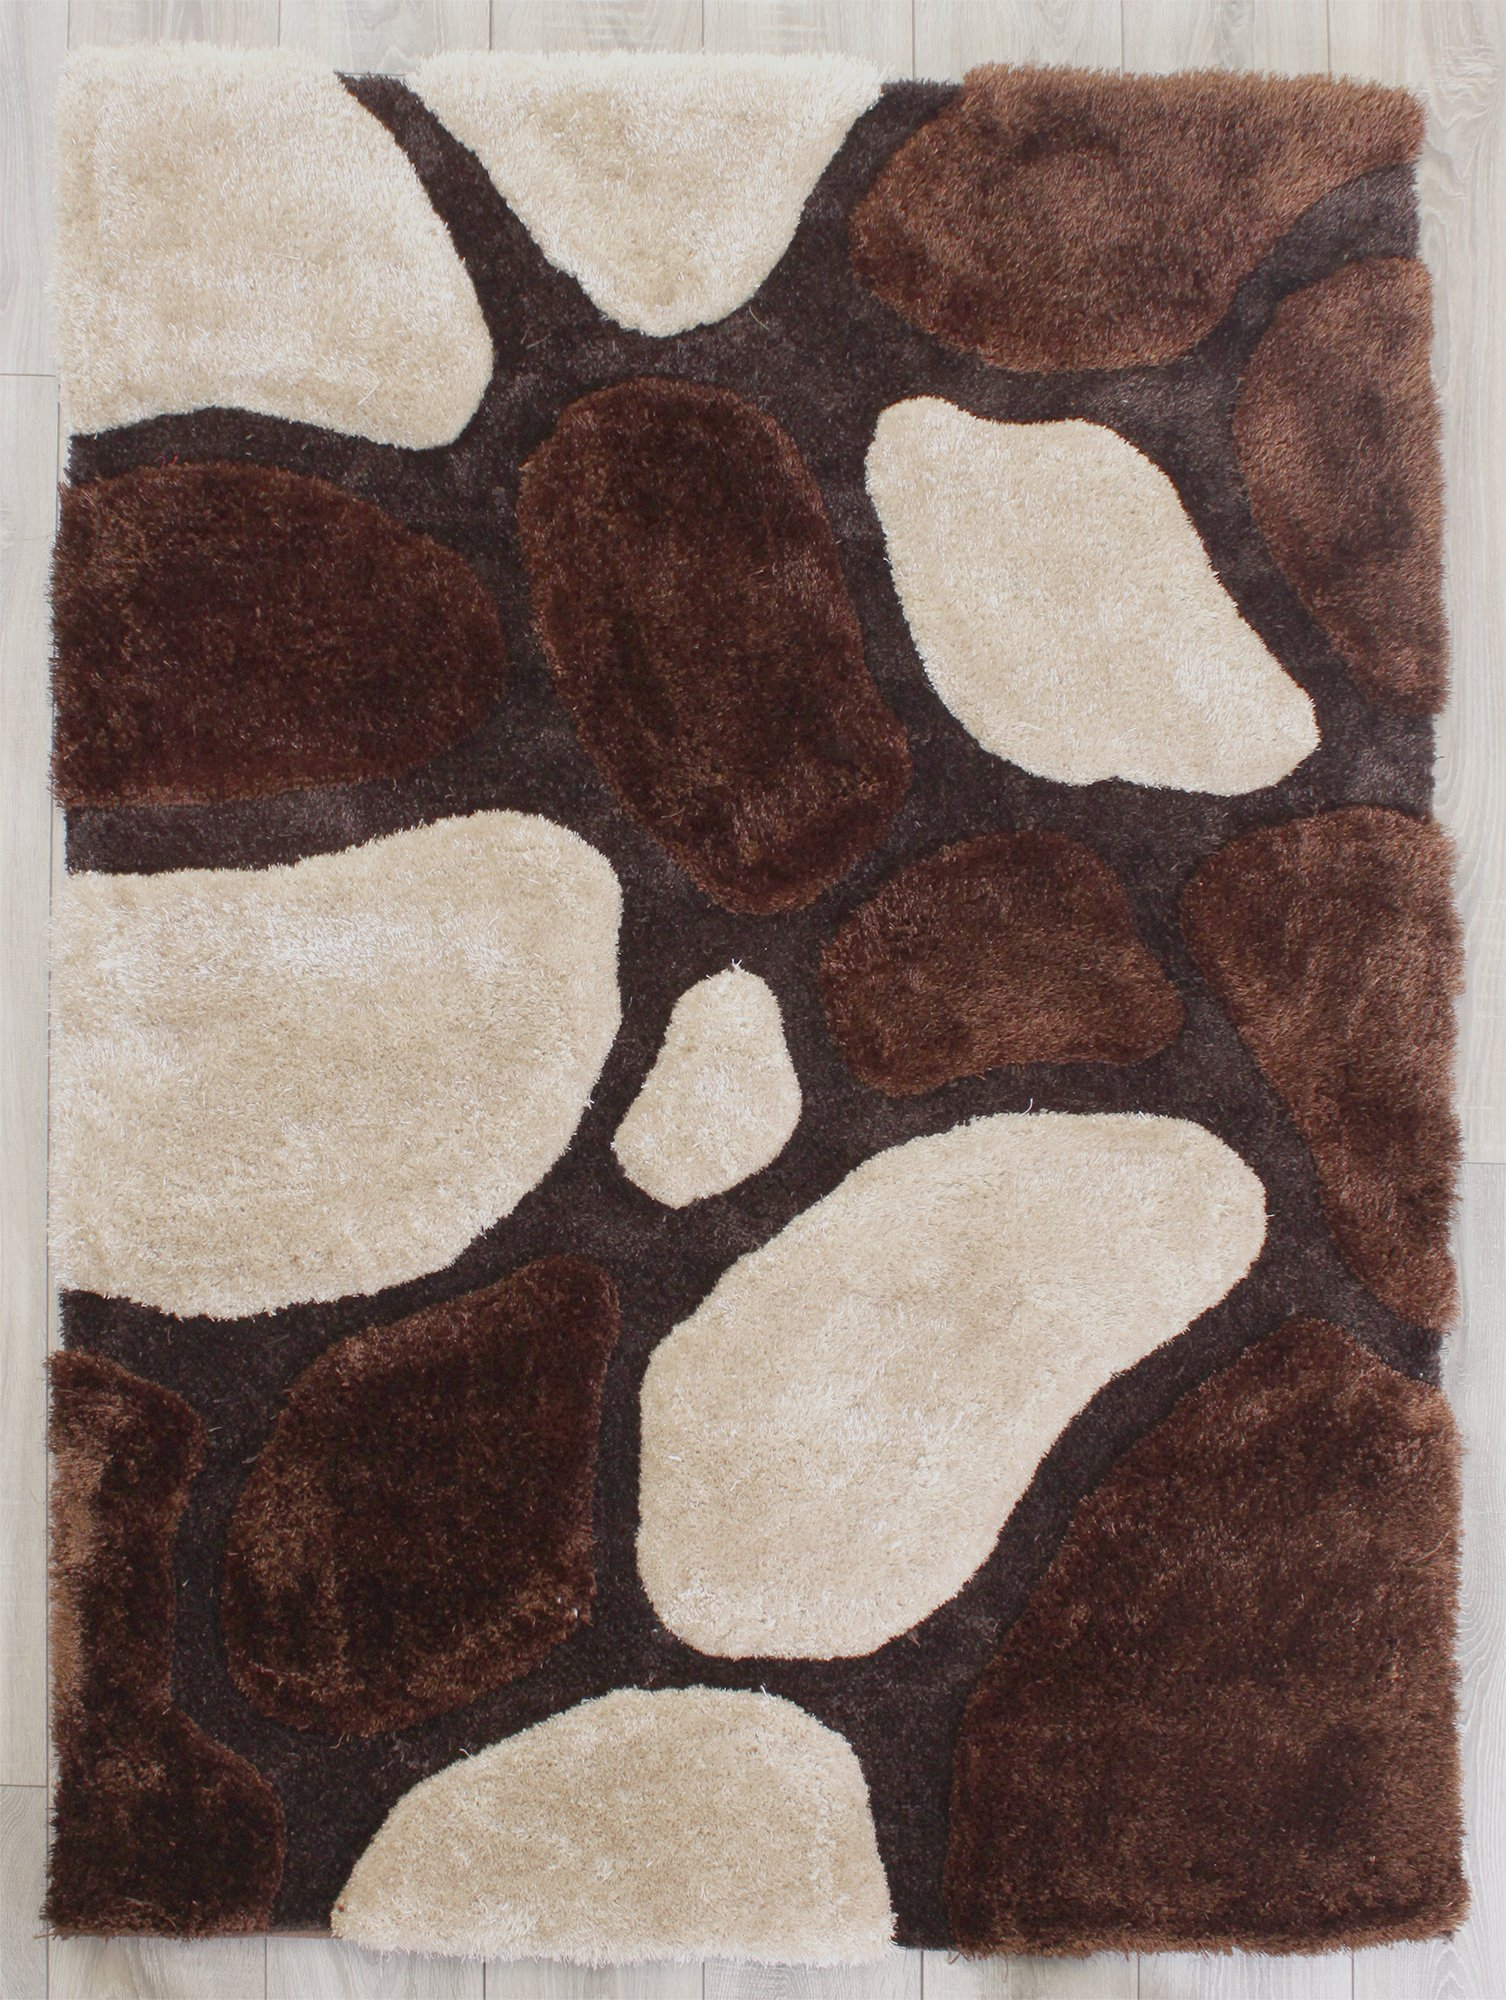 3D Stepping Stones Rug - 160x225cm - Natural.